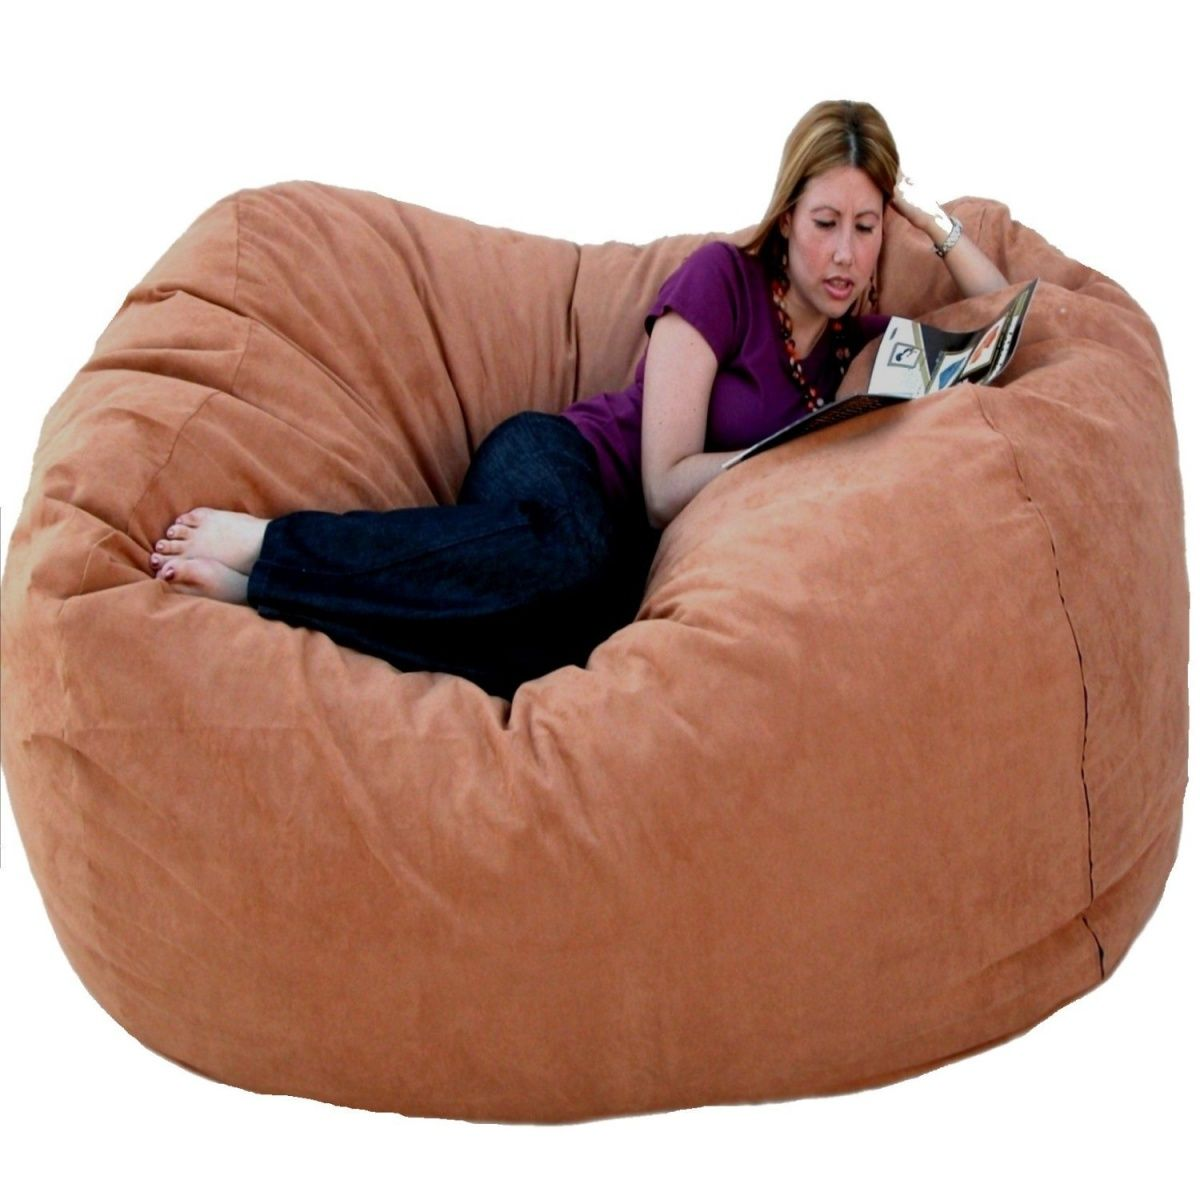 Giant bean bag chairs for adults - Large Bean Bag Chairs For Adults